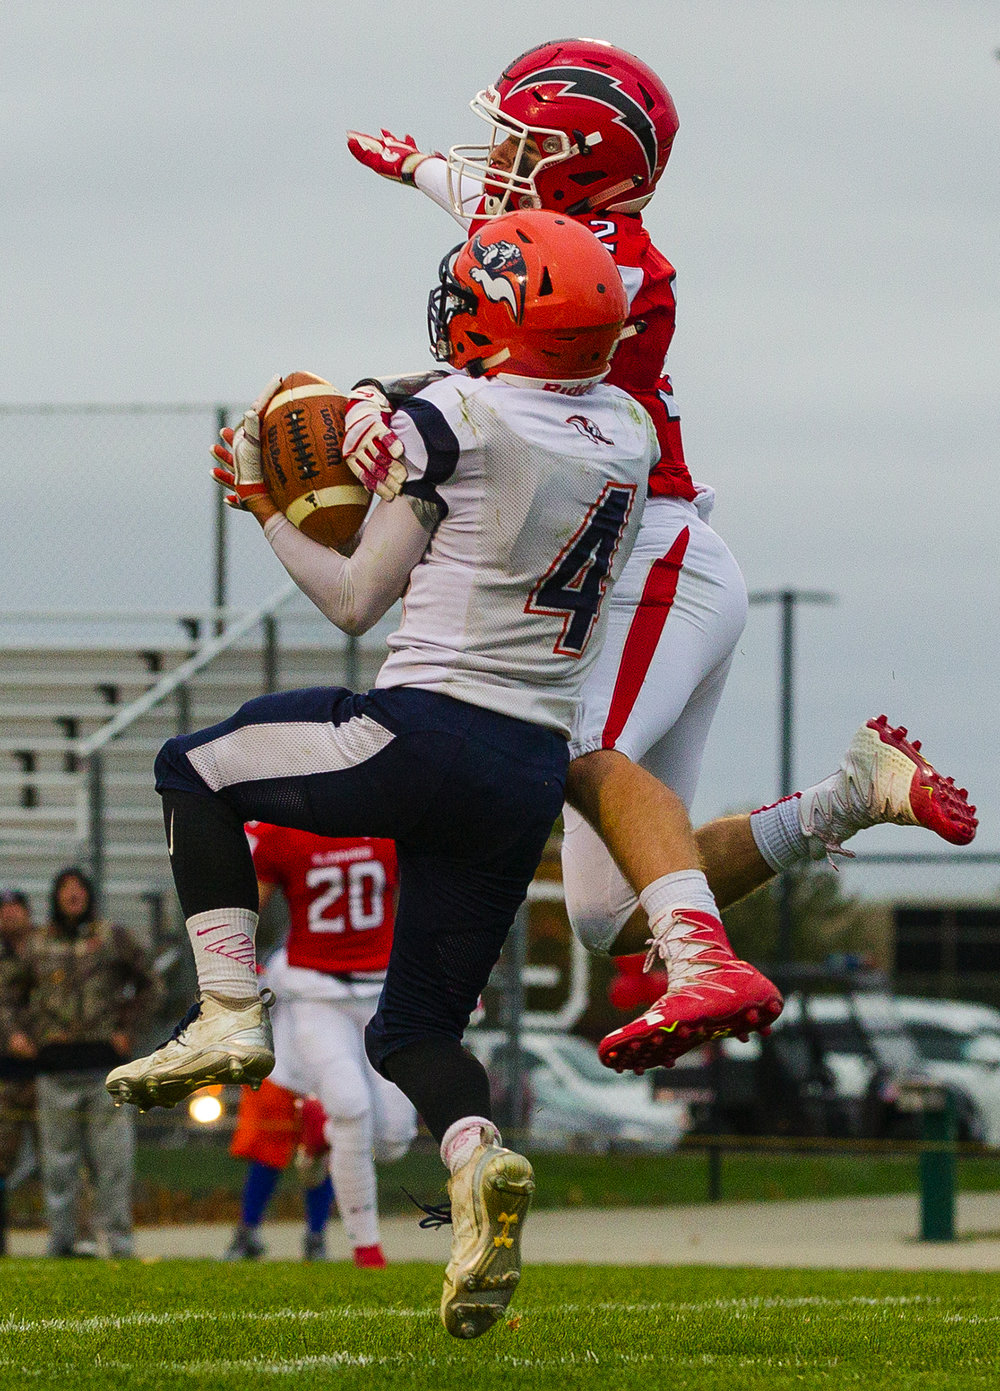 Glenwood's Jake Wooldridge defends Mahomet-Seymour's Dylan Gates as he attempts to catch a pass during the IHSA Class 5A football playoffs at Chatham Glenwood Saturday, Oct. 28, 2017. [Ted Schurter/The State Journal-Register]